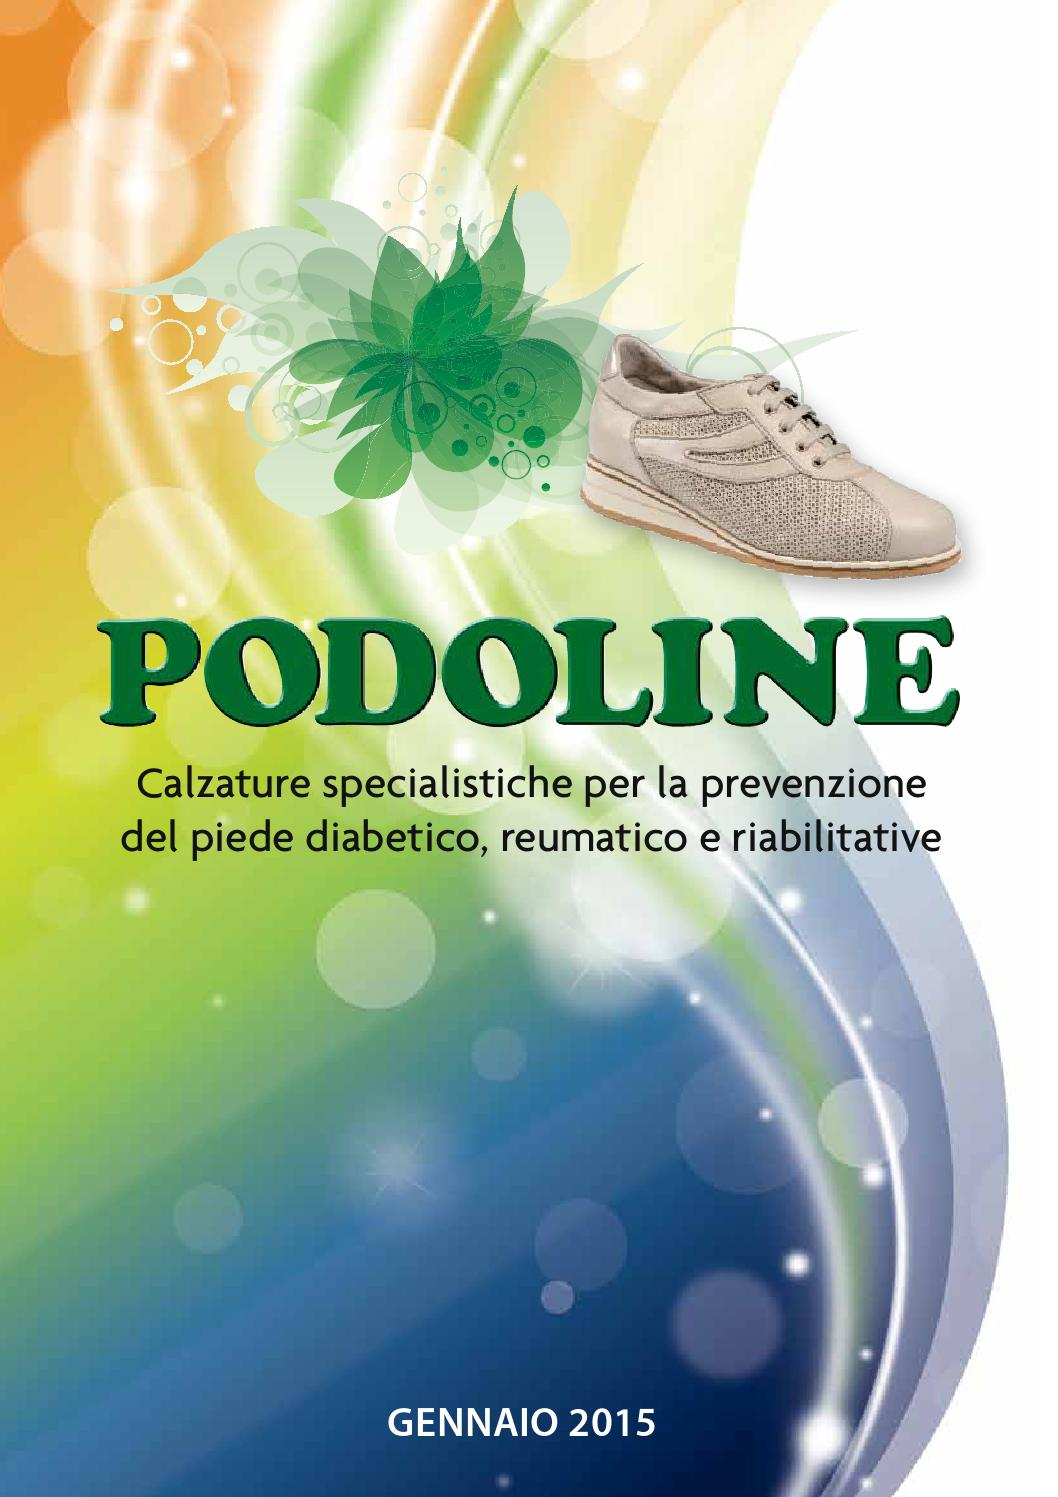 Podoline 2015 by NEWSAN issuu